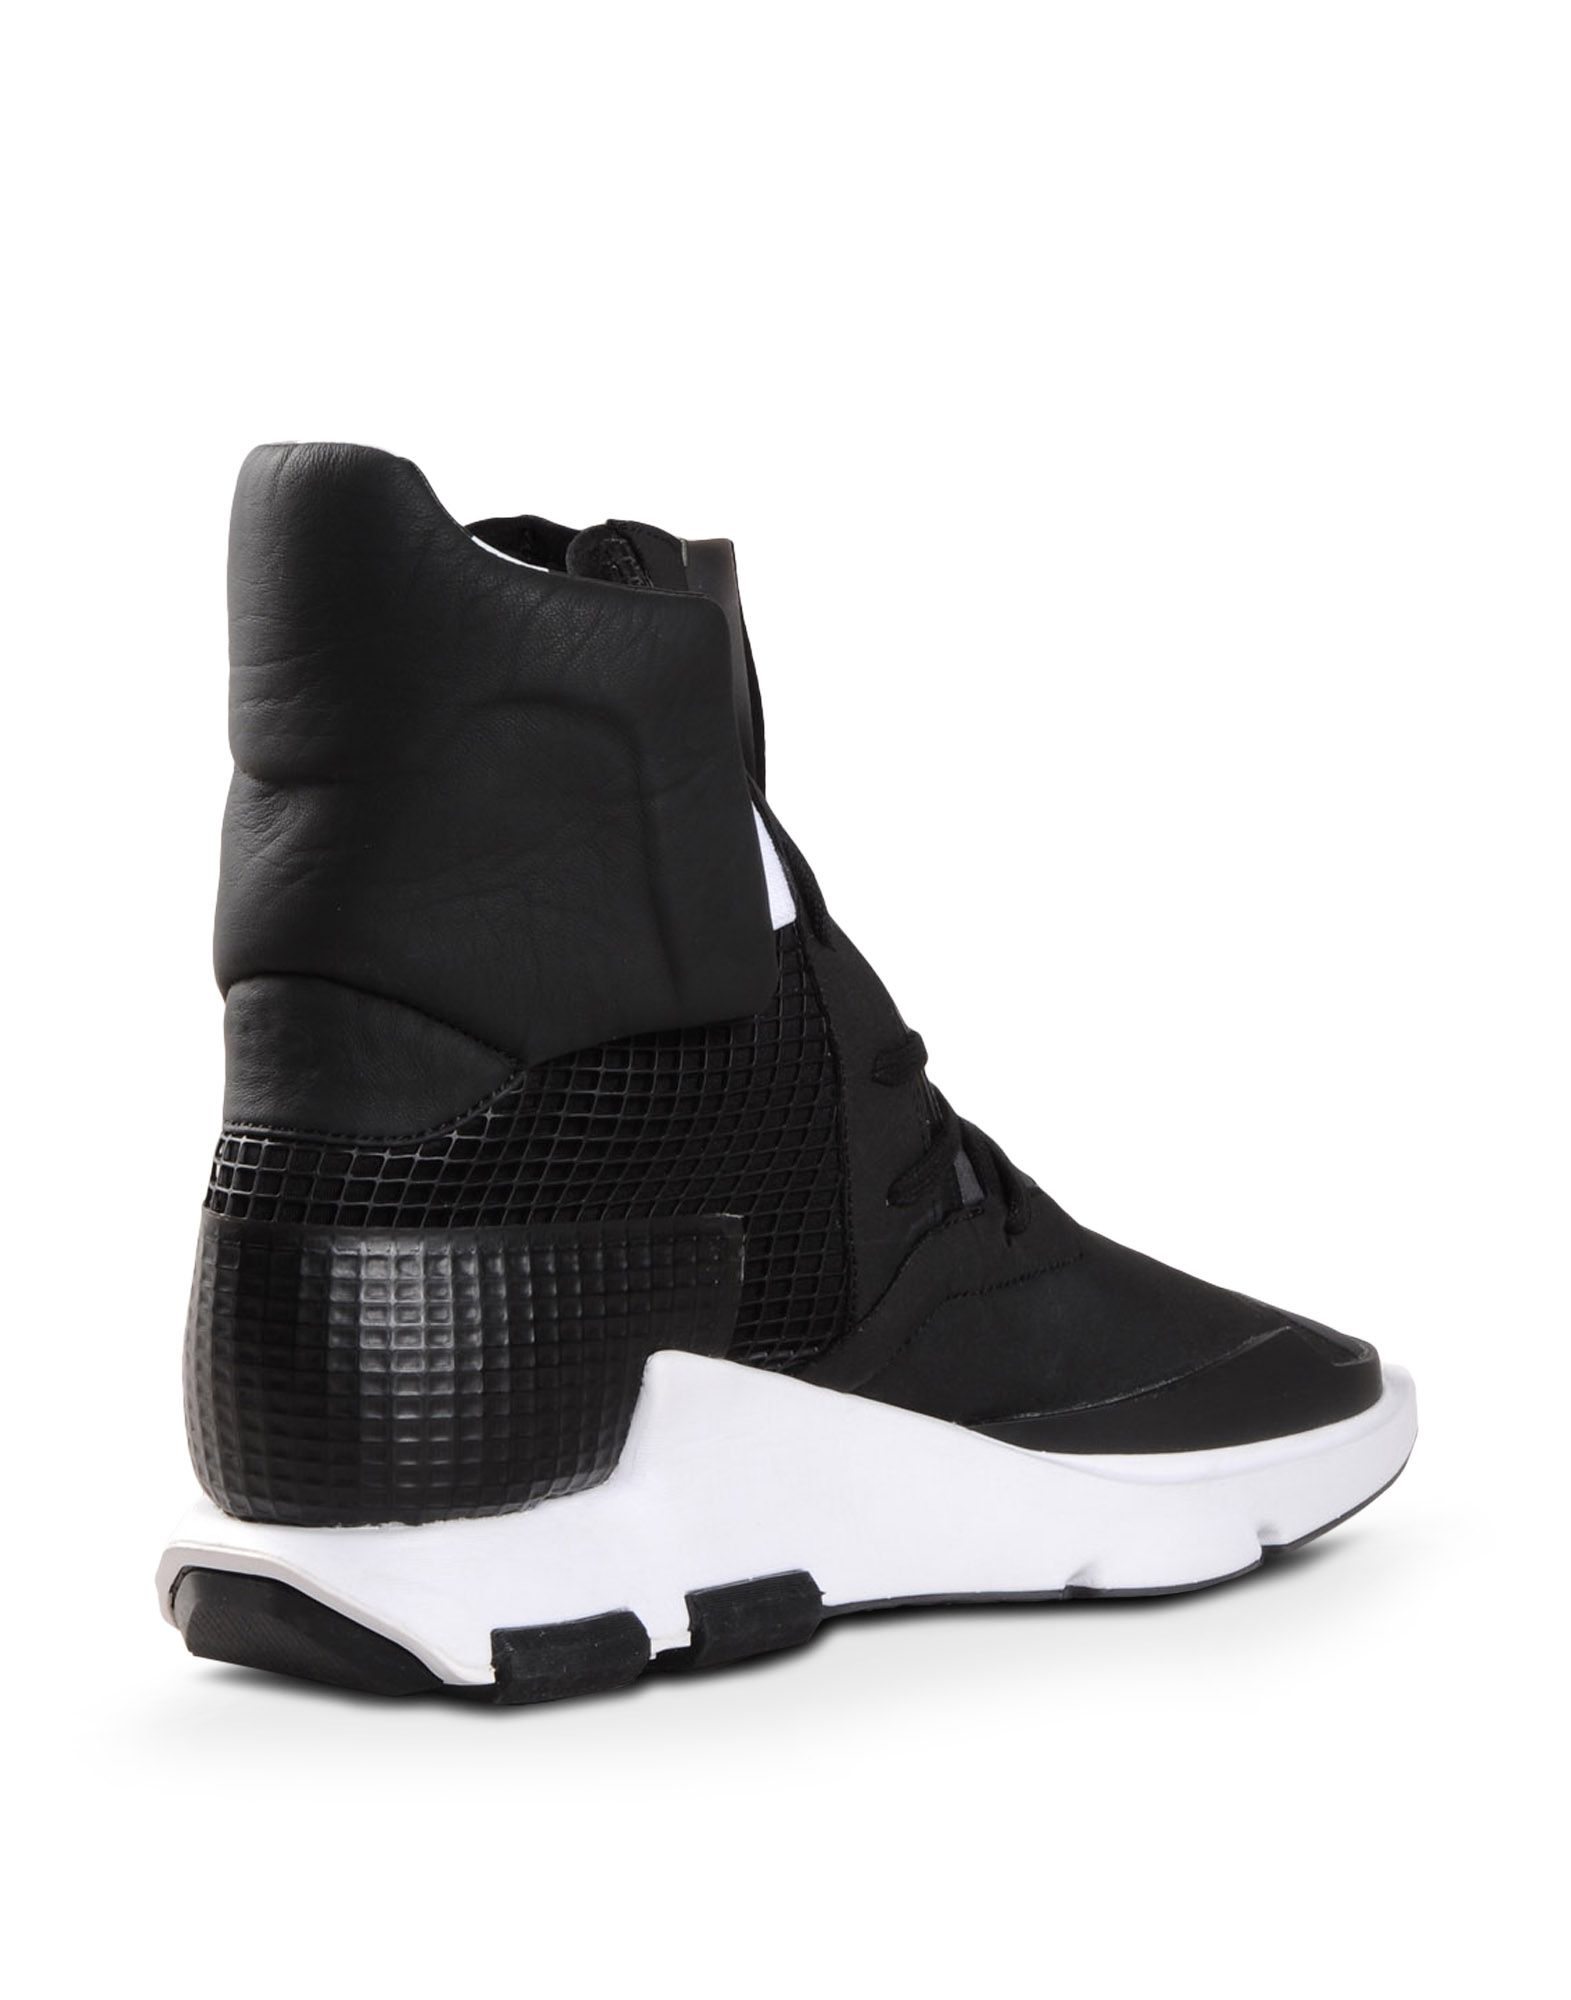 Y 3 NOCI HIGH High Top Sneakers | Adidas Y 3 Official Site